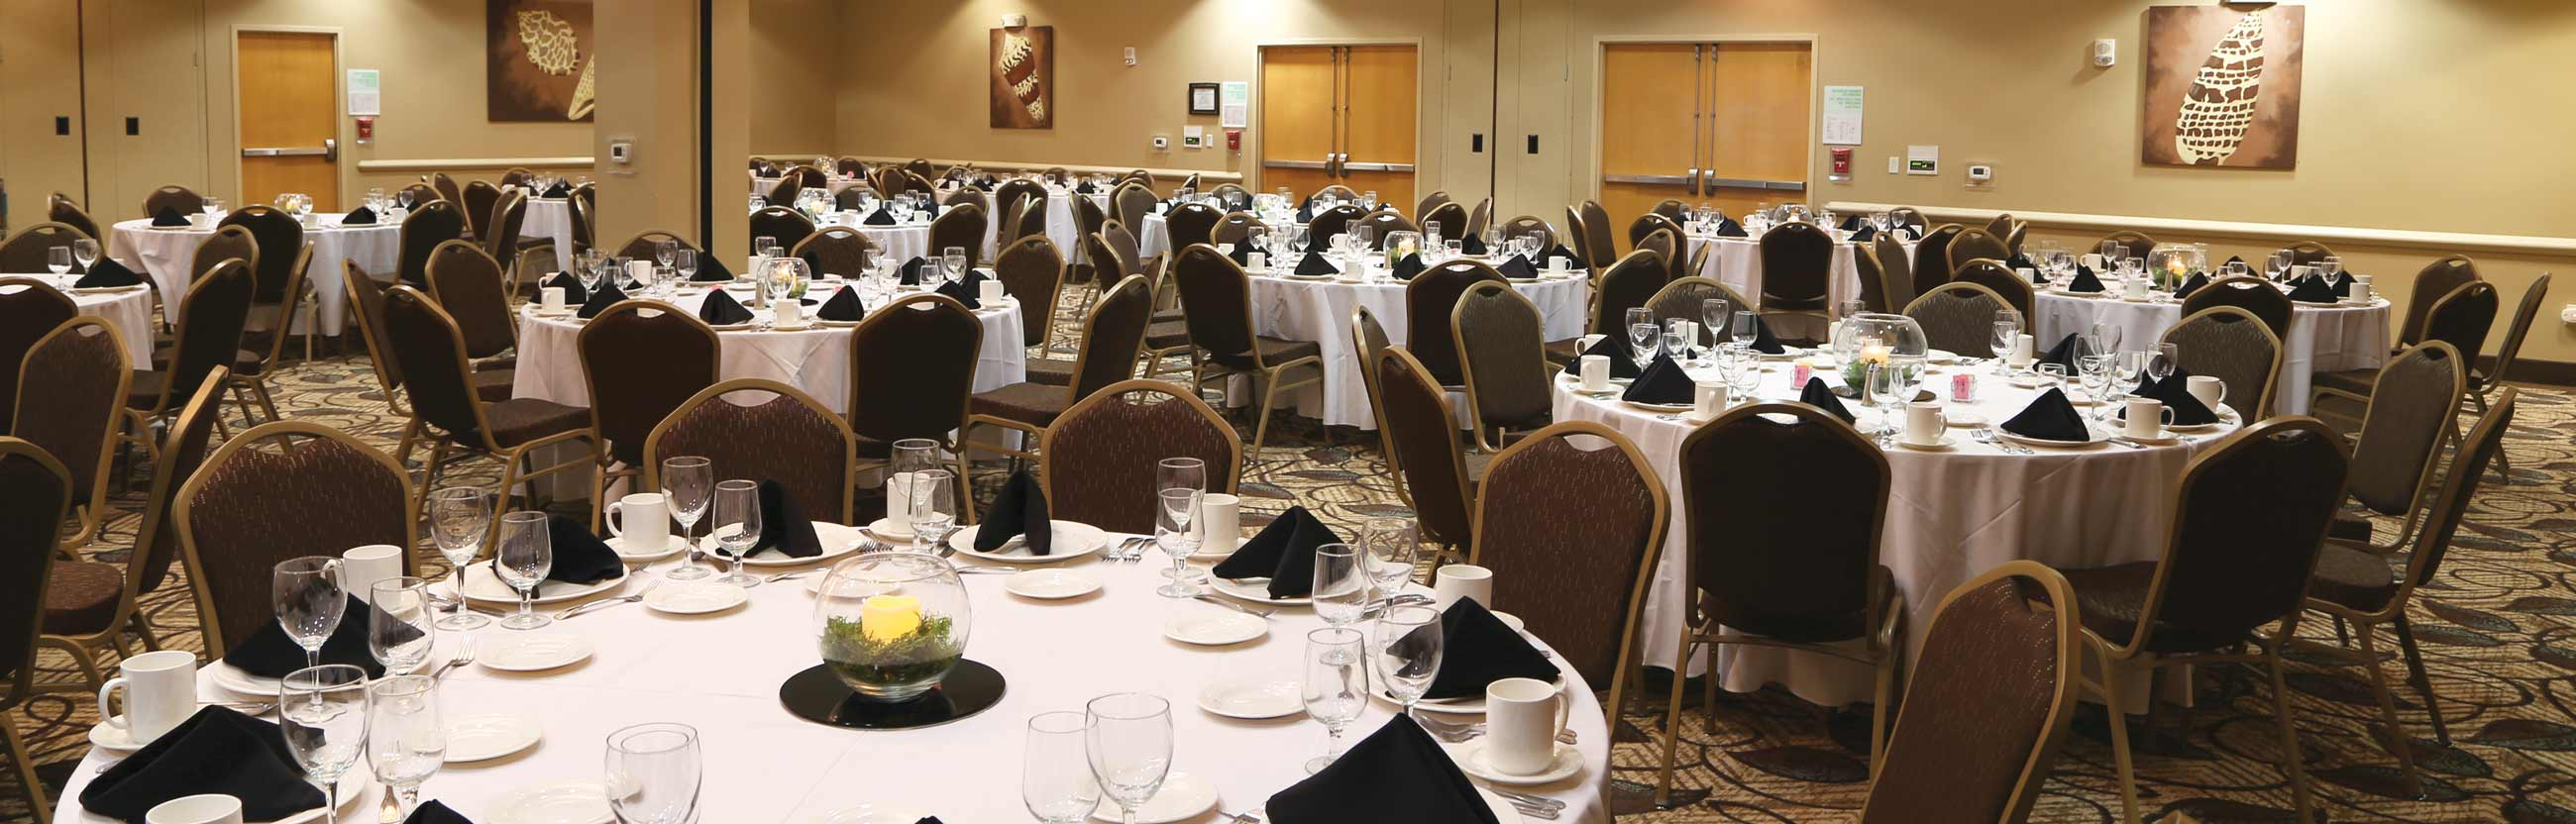 Large capacity ballroom on-site